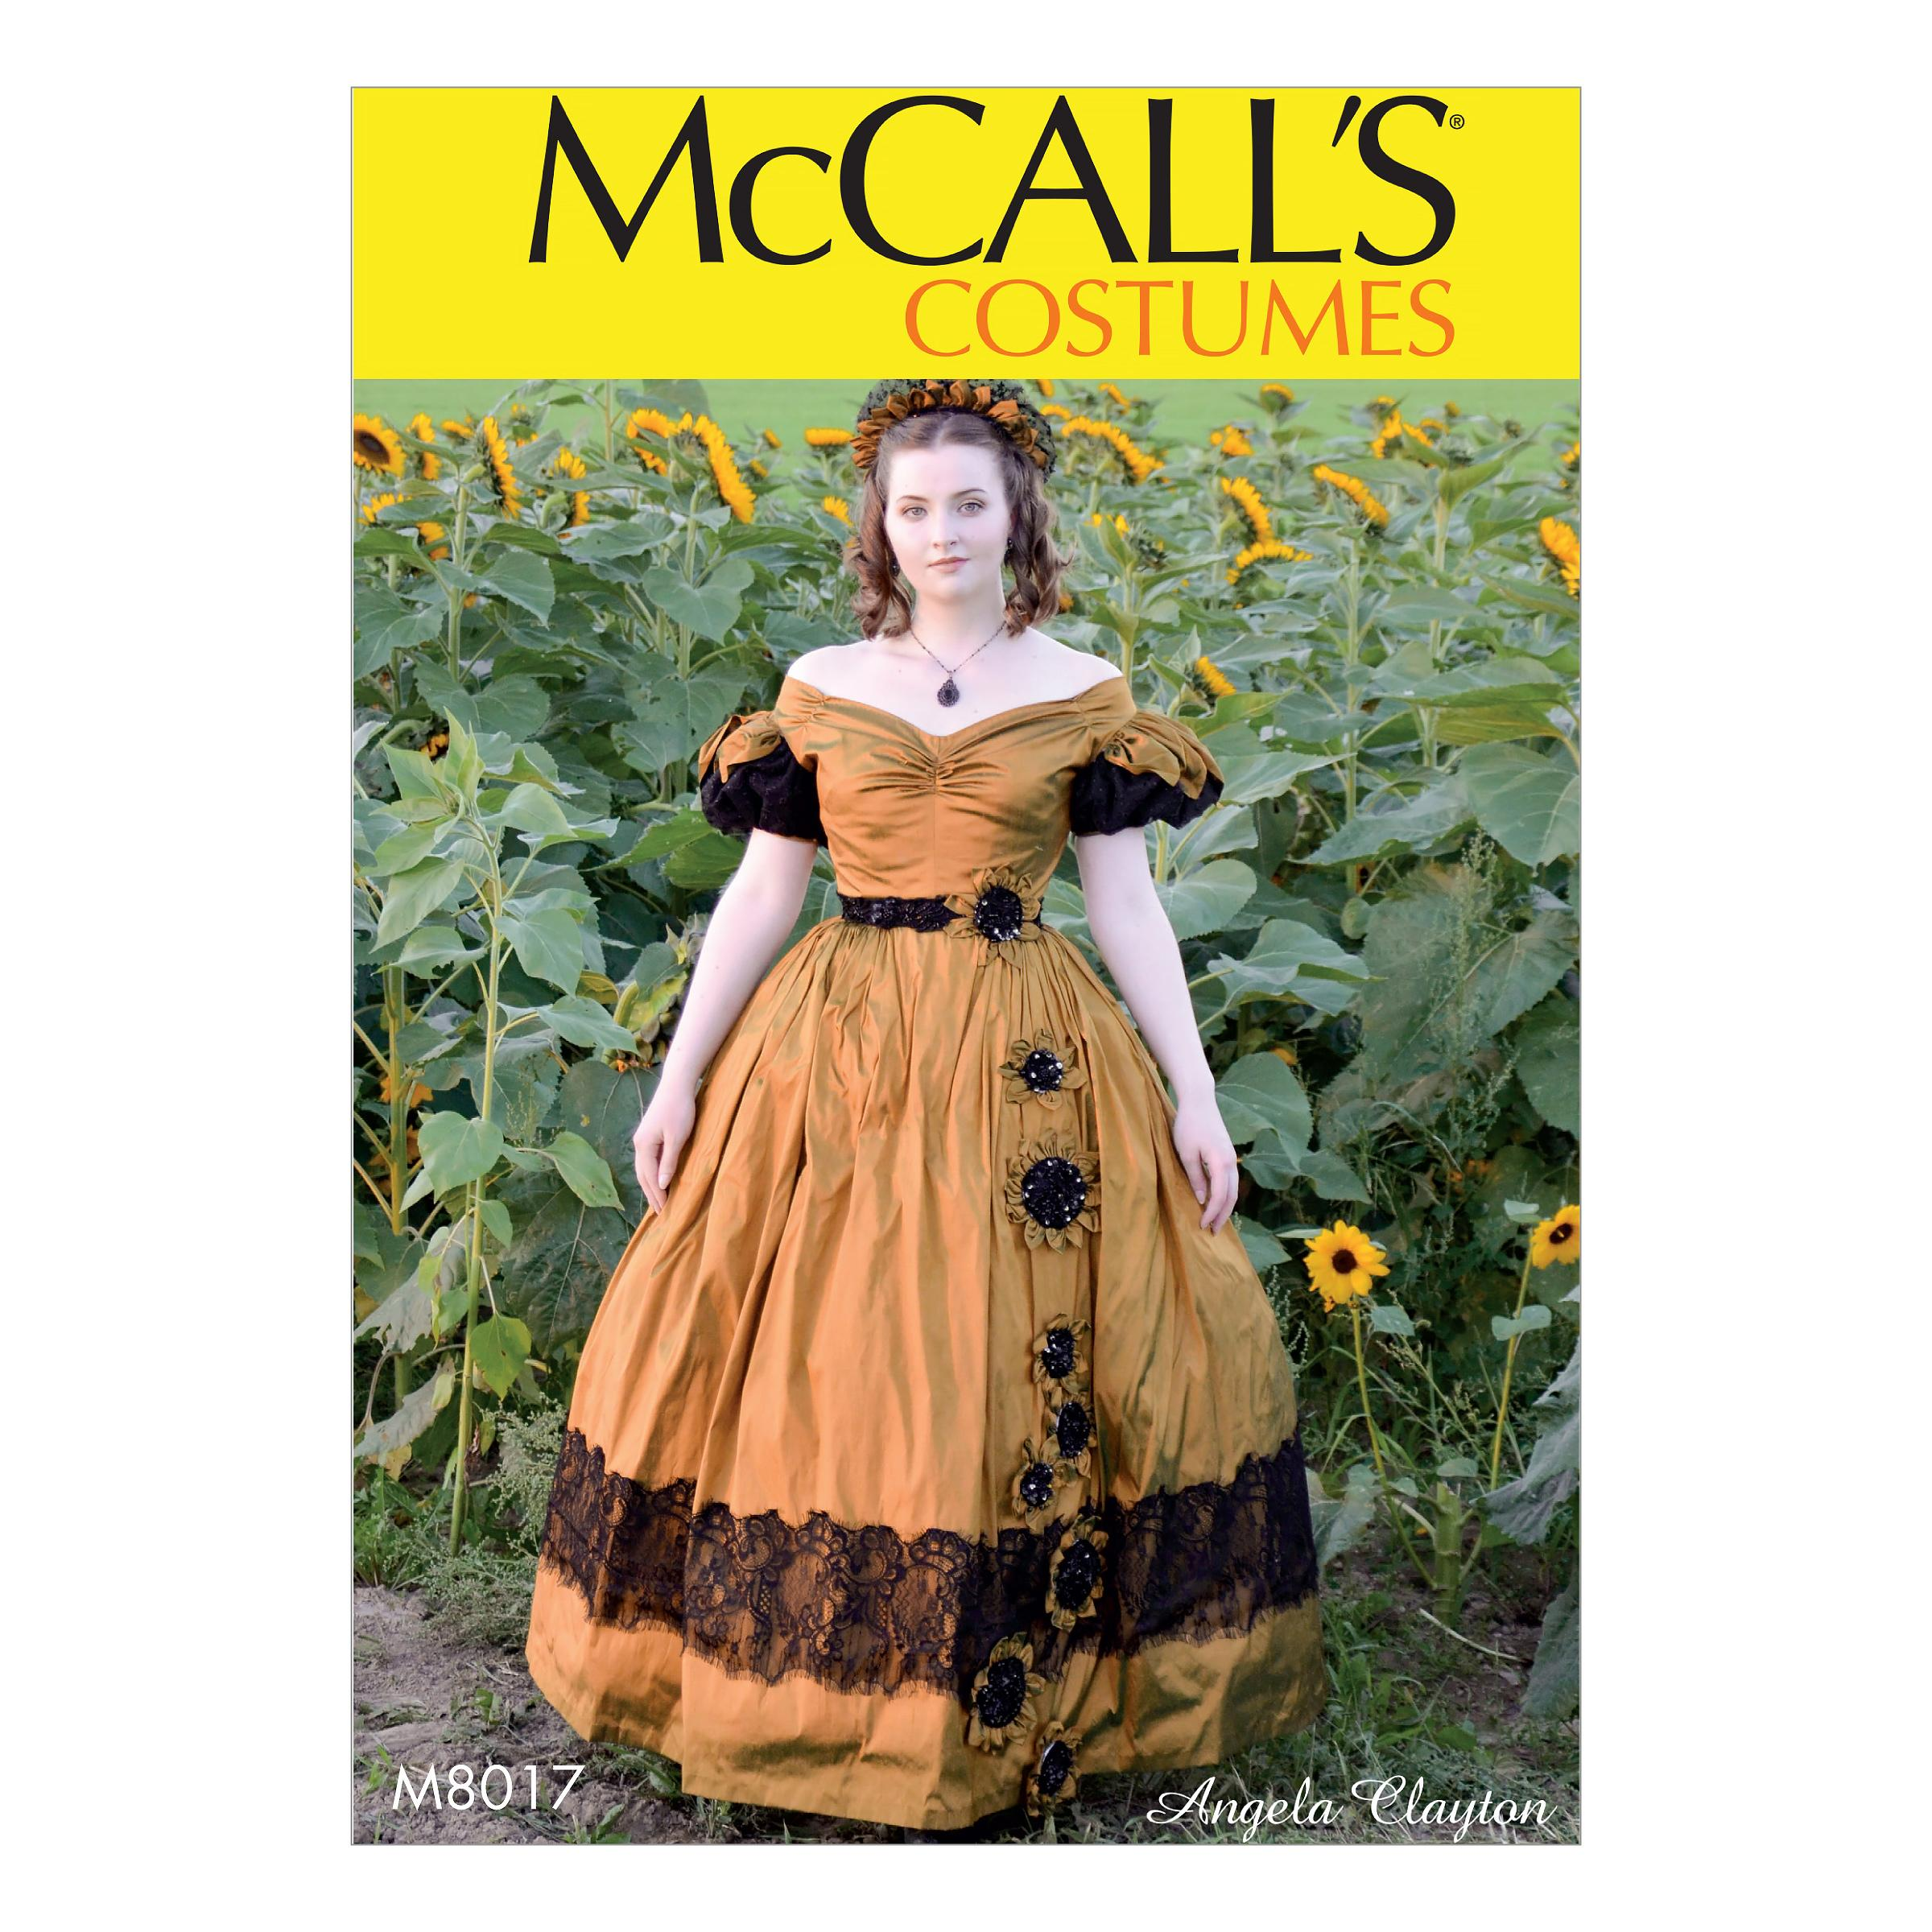 McCalls M8017 Misses , Costumes